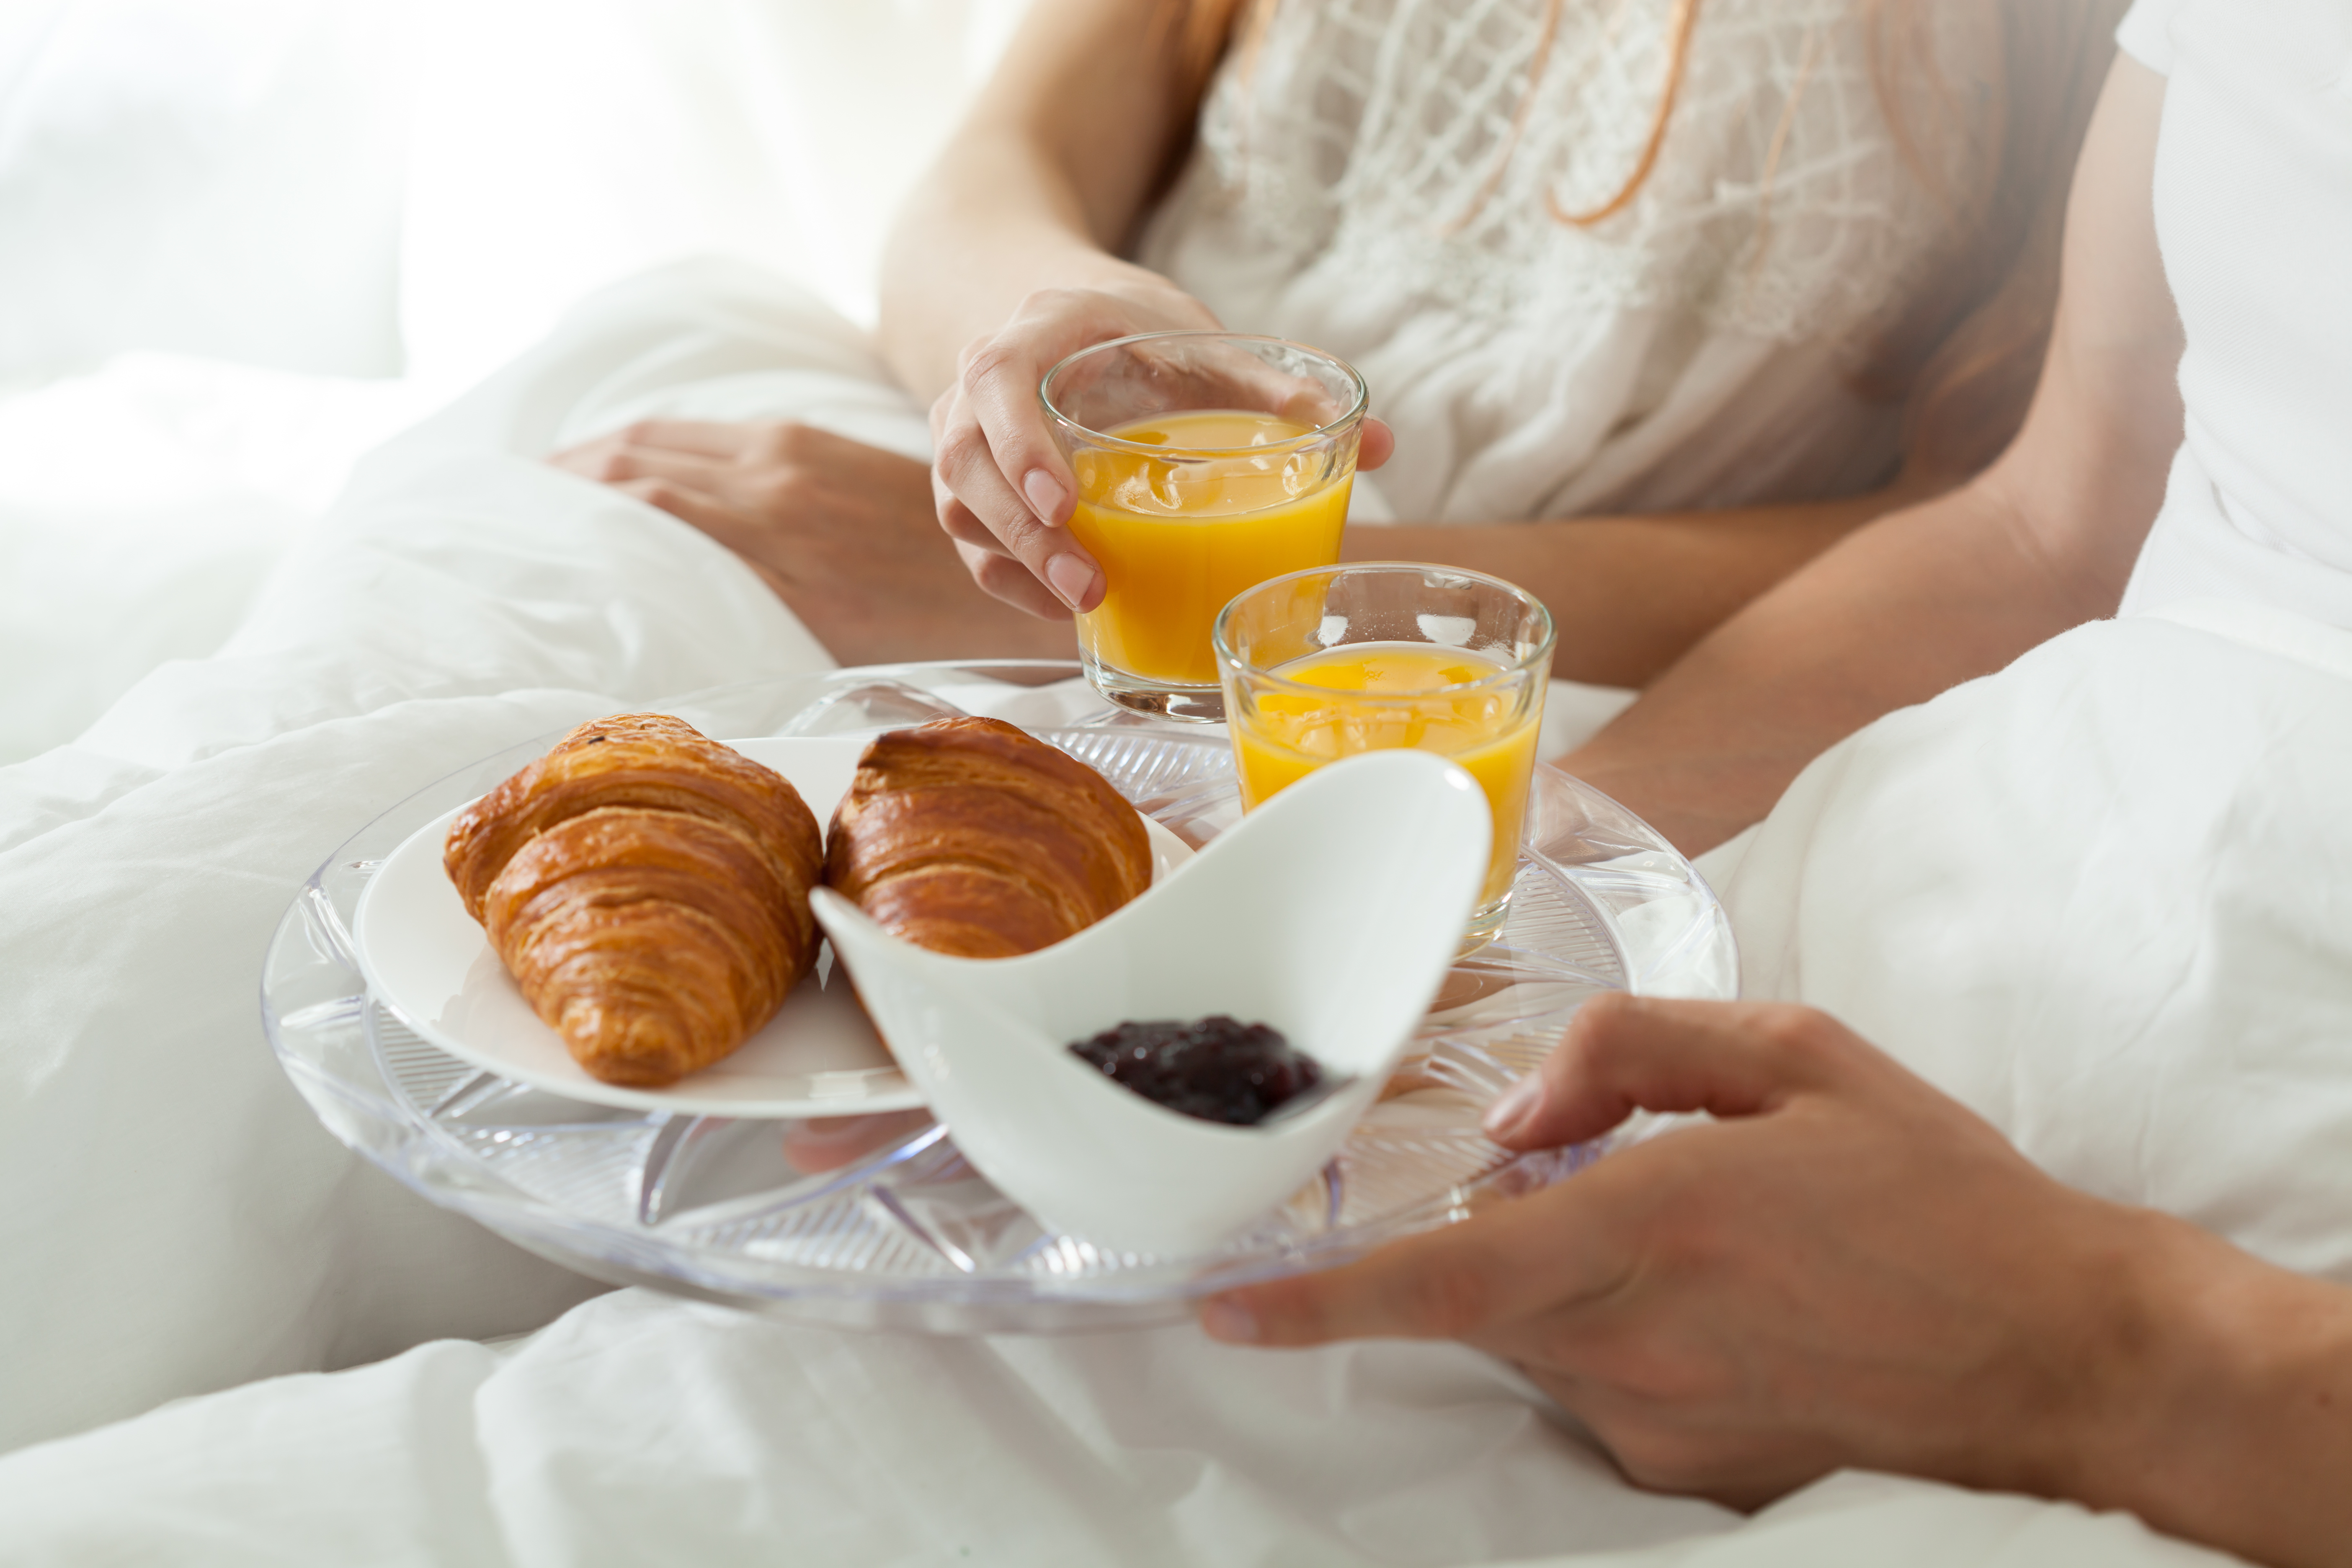 eating-breakfast-in-bed-PHWT66M (1)